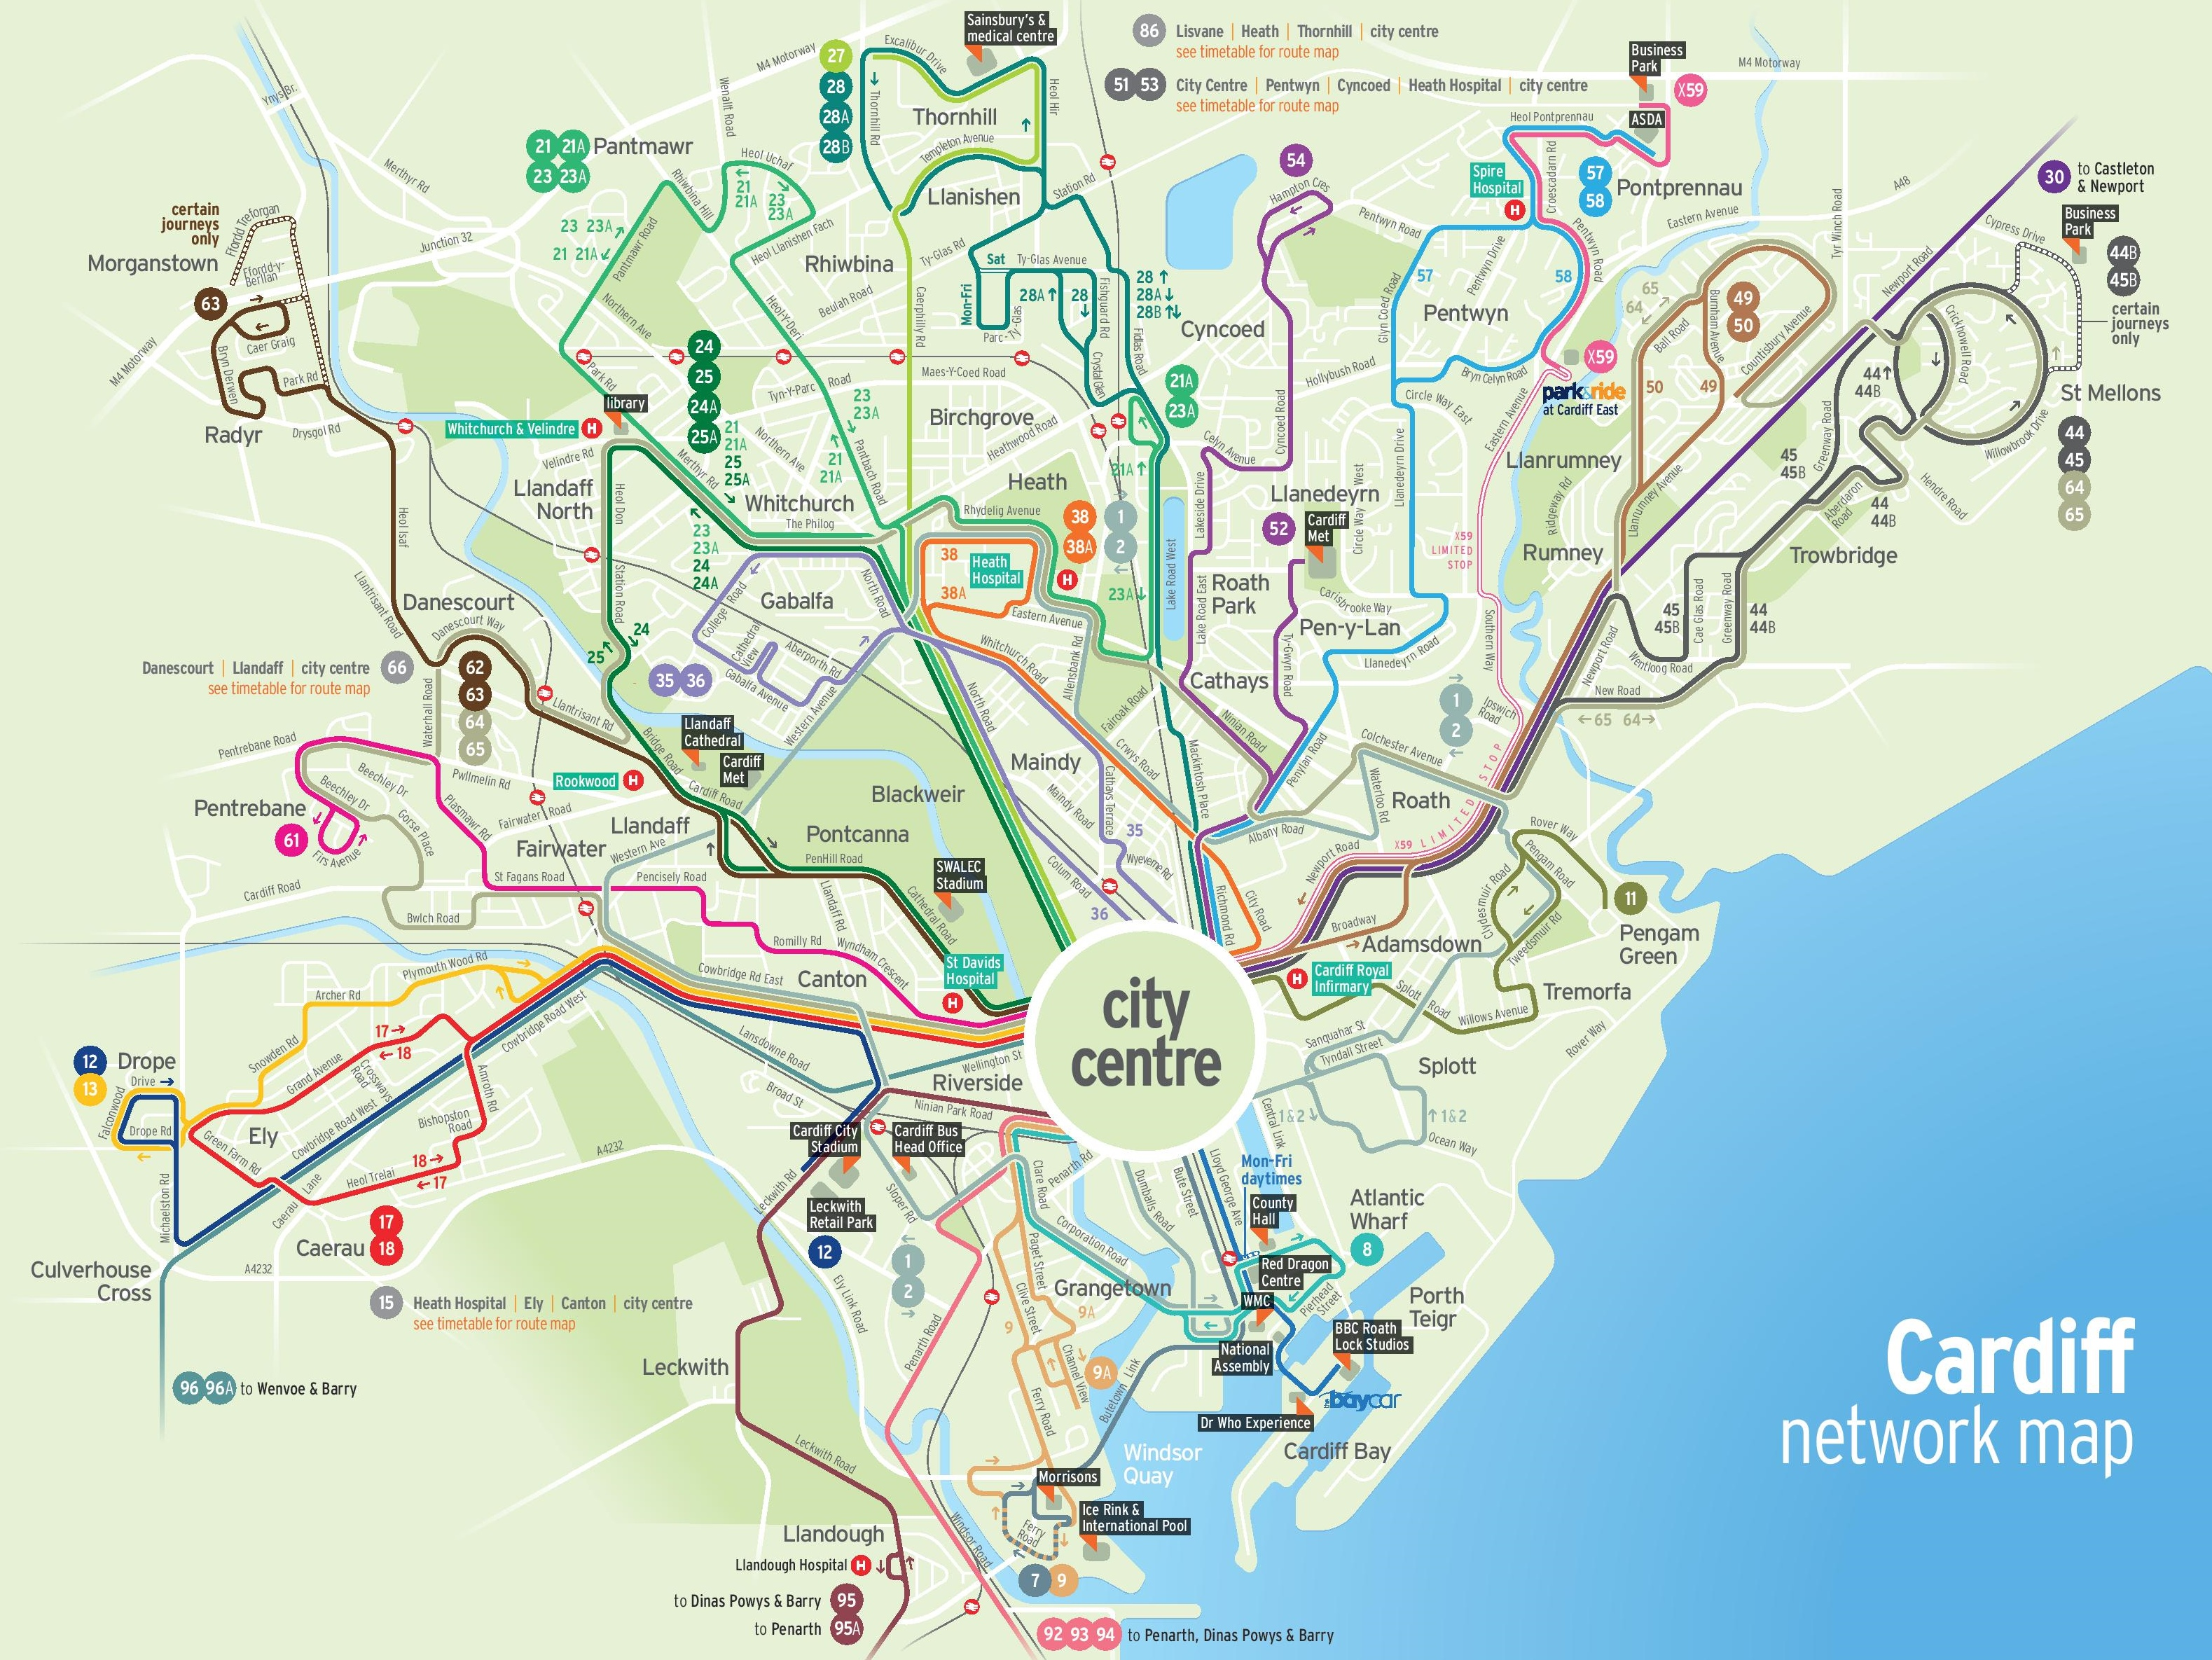 Cardiff City Map Cardiff transport map Cardiff City Map